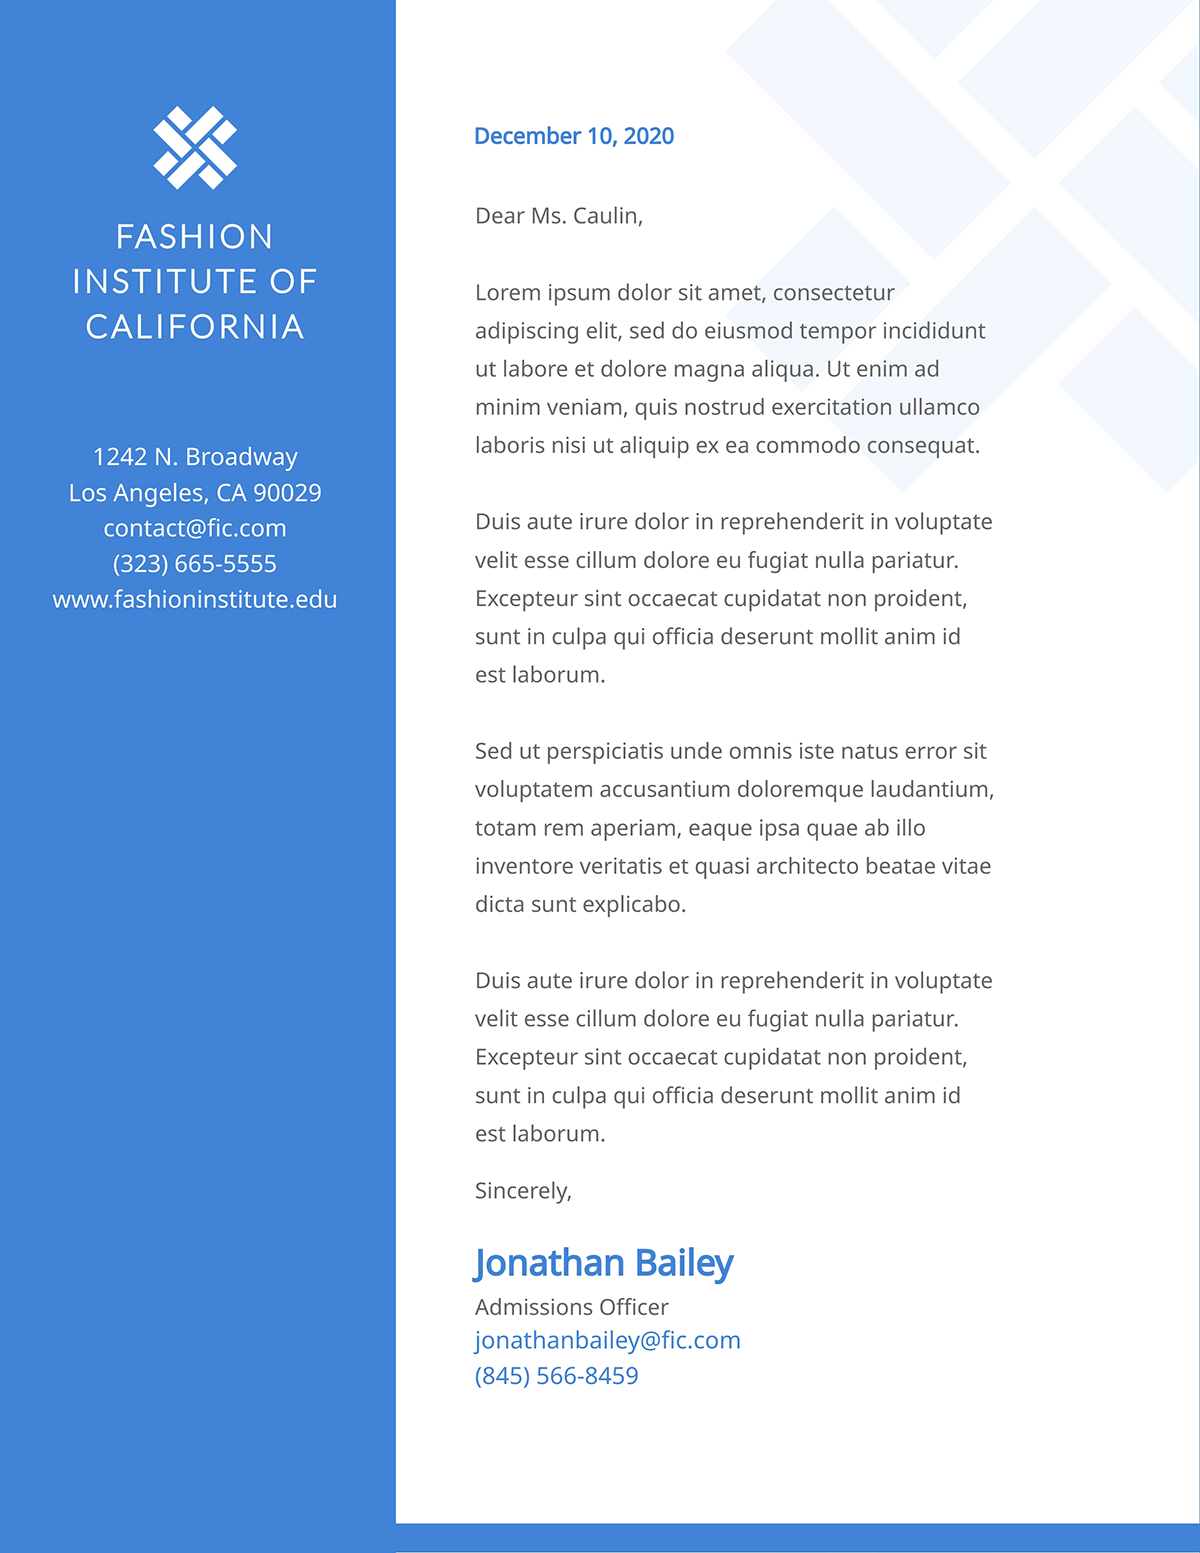 A fashion institute letterhead template available to customize in Visme.